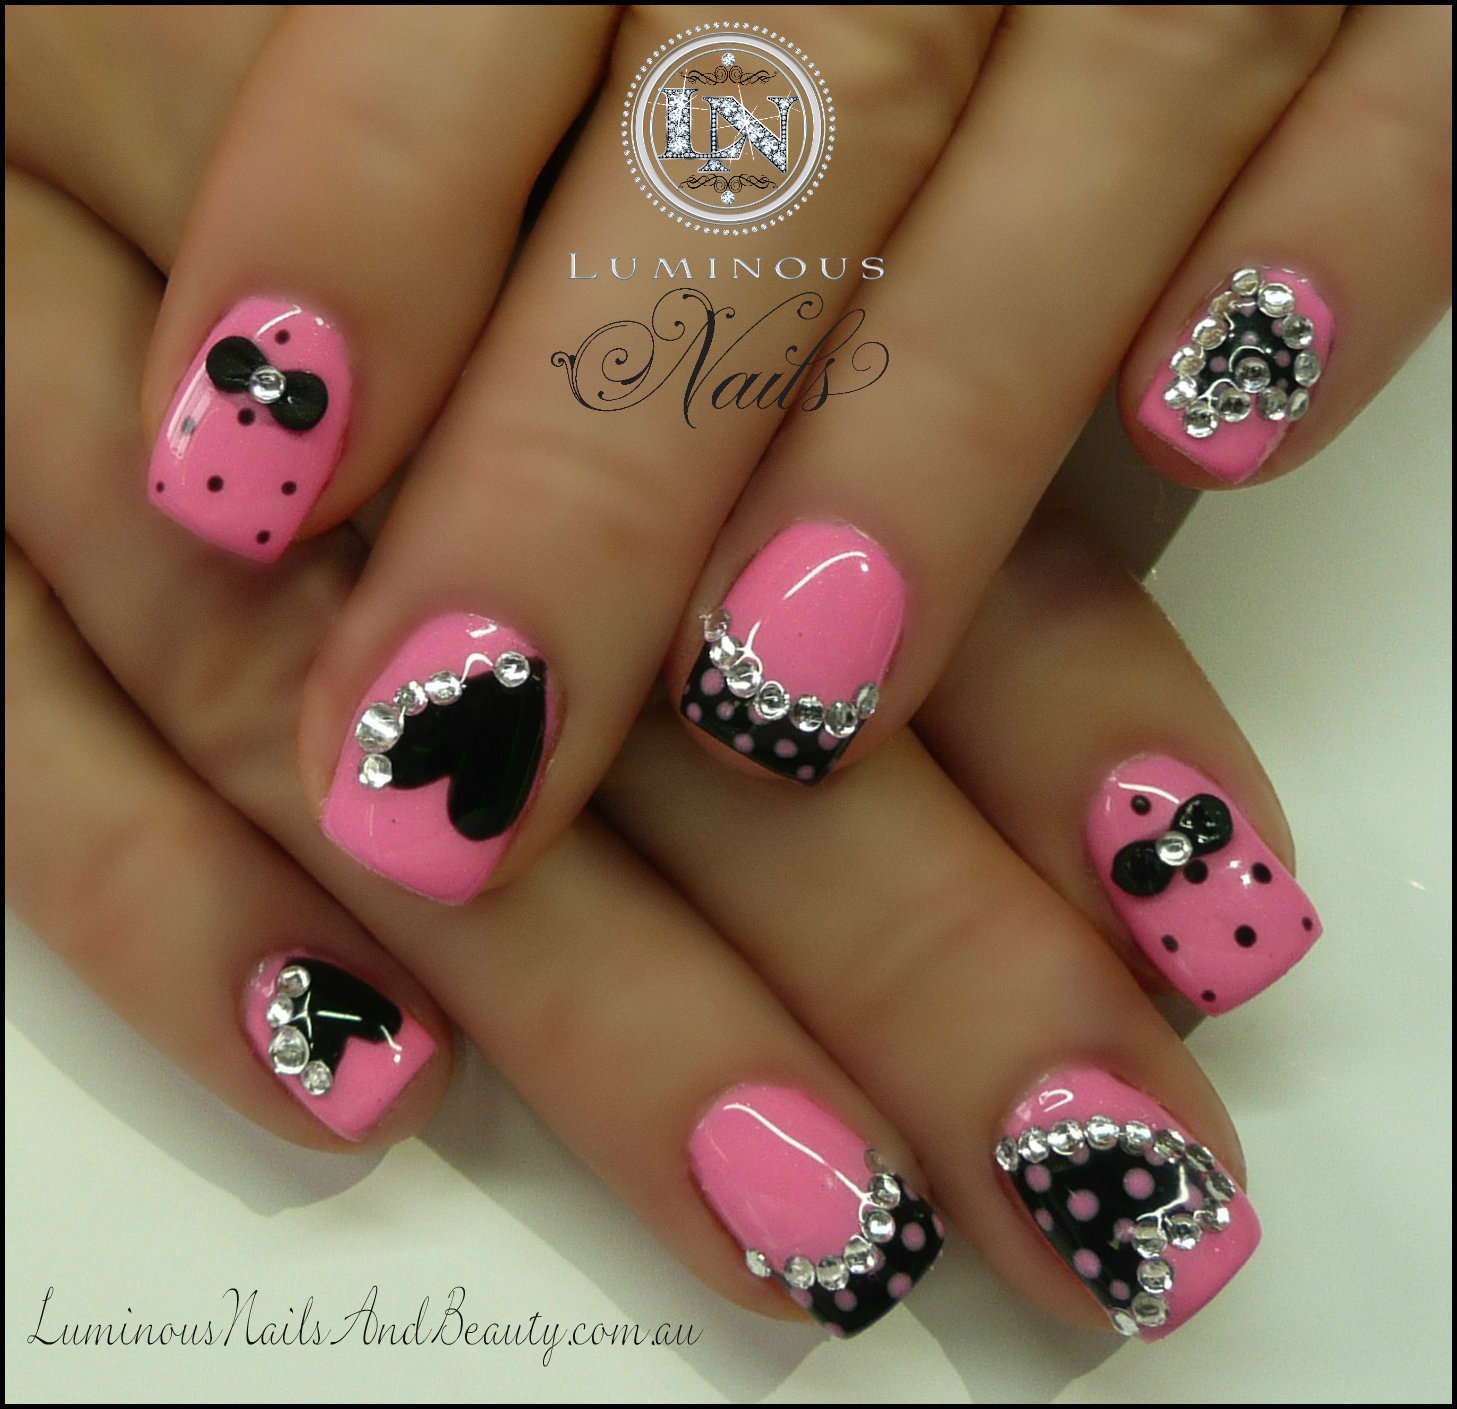 The Awesome Pink polka dots nails funny Digital Photography